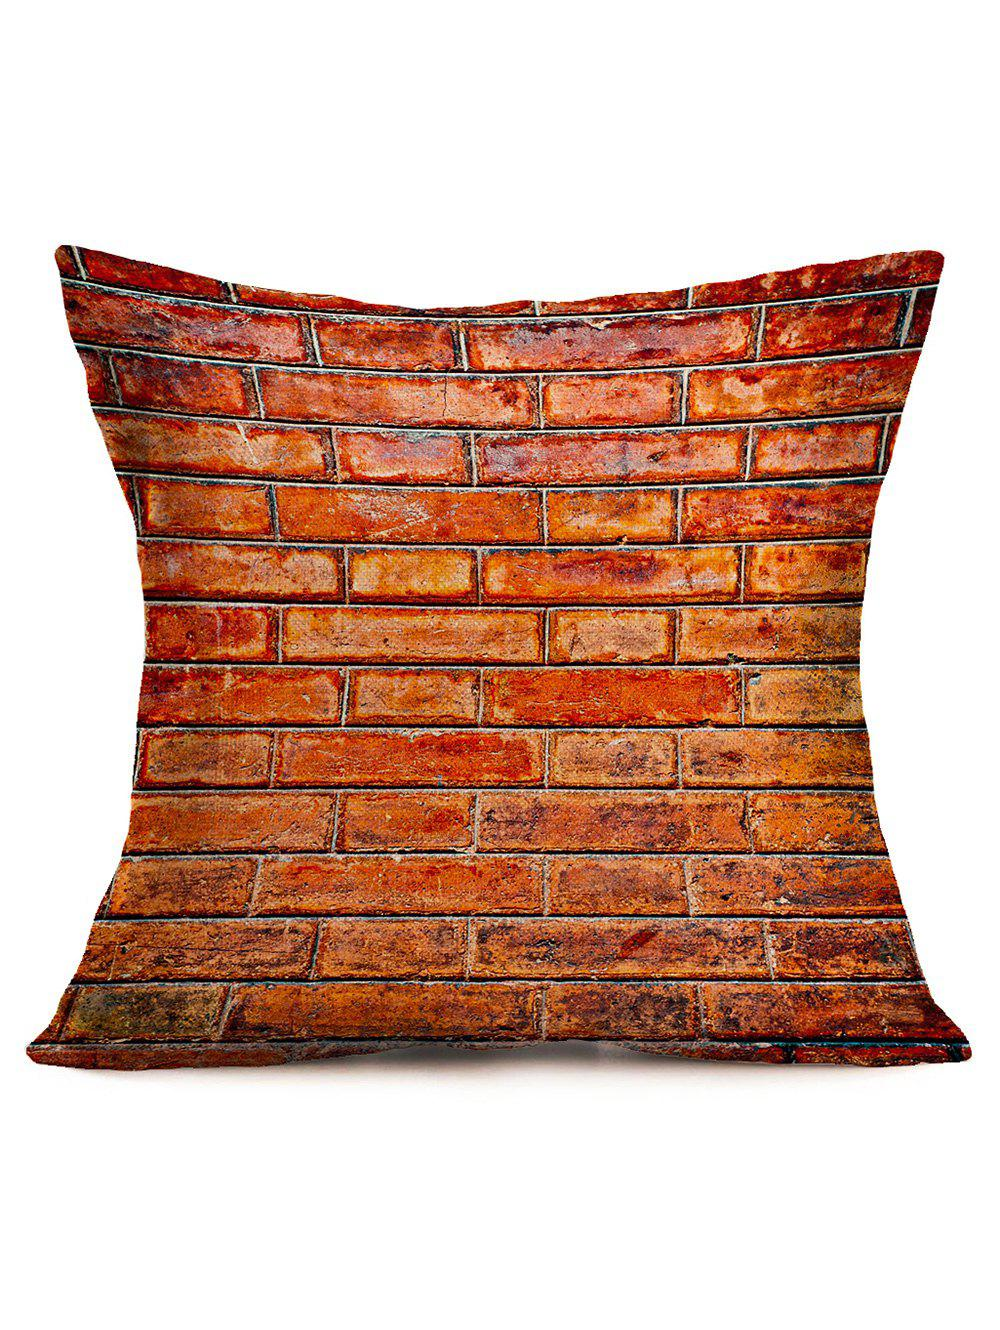 Natural Brick Print Square Pillow Case - BRICK RED 43*43CM